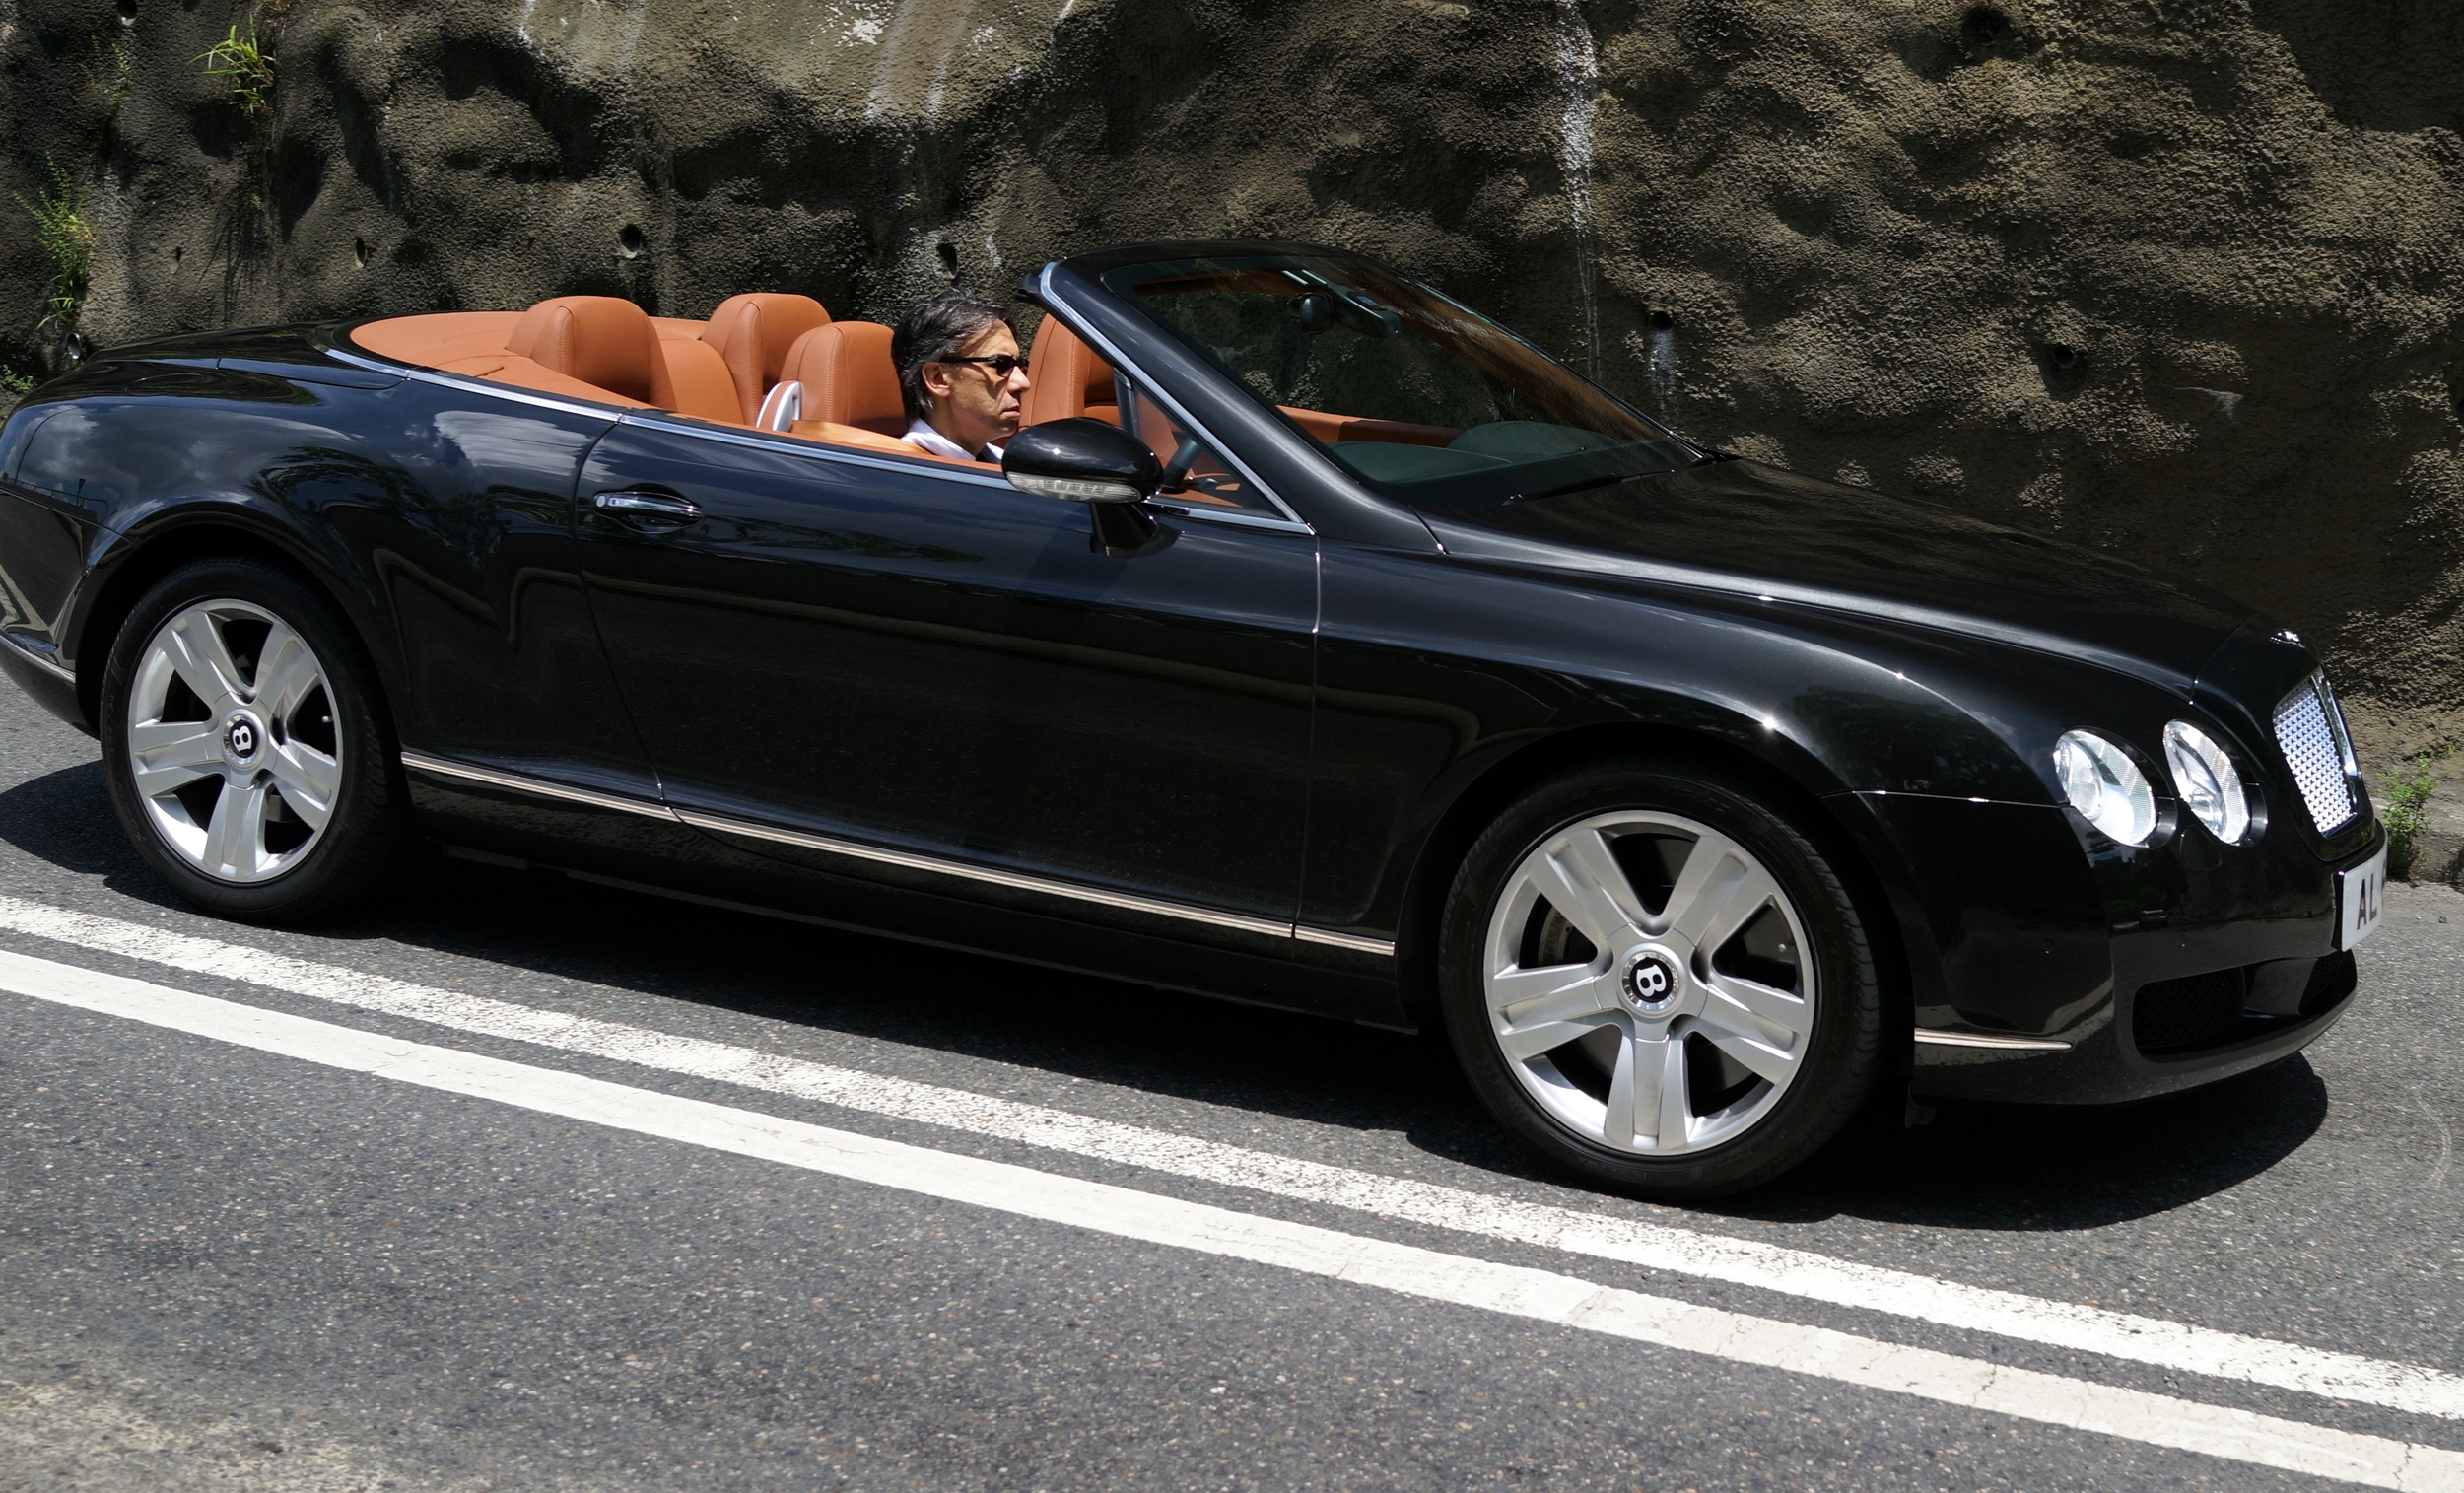 Mid morning on a sunny Sunday zipping through the very scenic Deep Water Bay in a Bentley, I would be grinning from ear to ear... miserable sod!